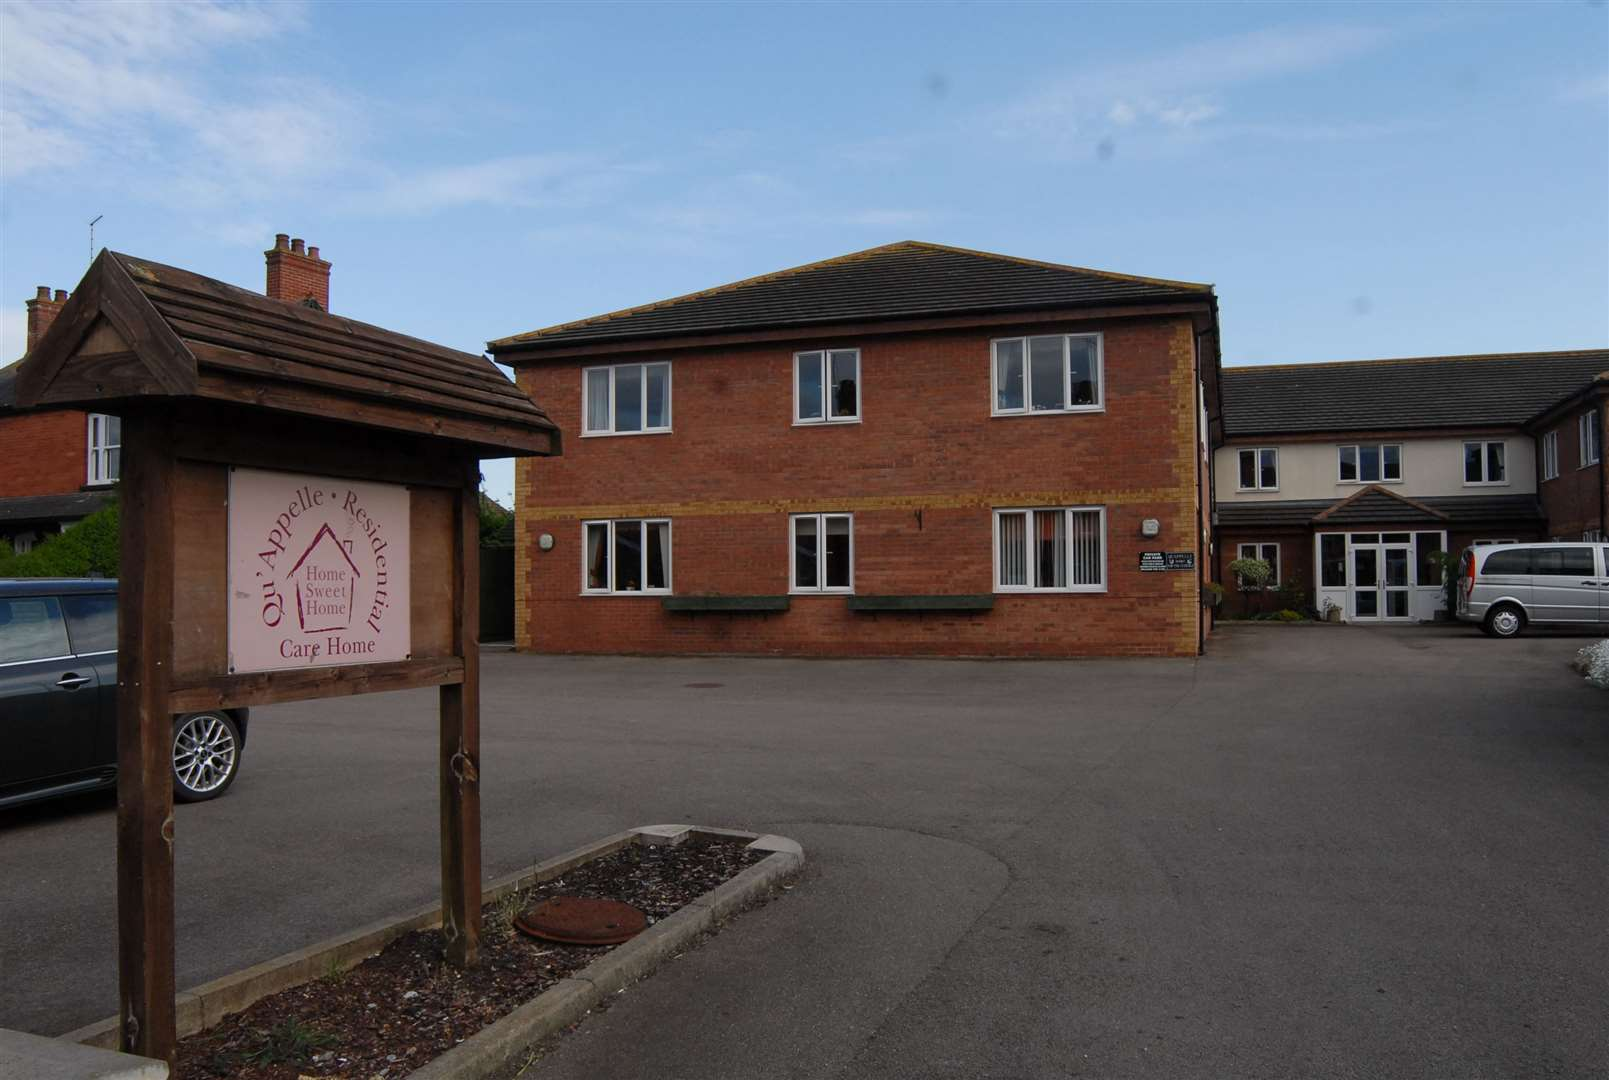 Qu'Appelle Residential Care Home, Meadowgate, Bourne (10955763)